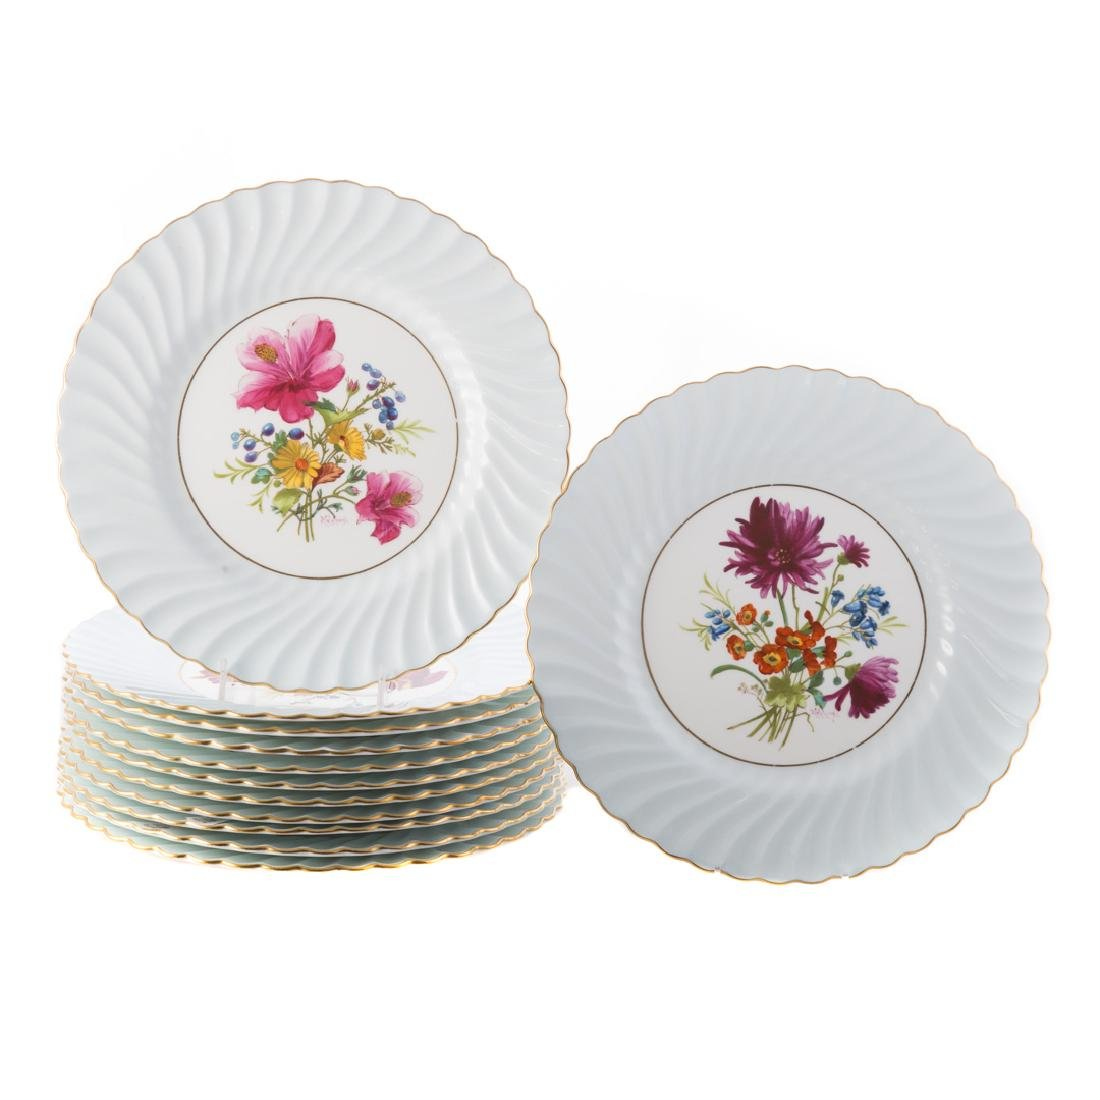 12 Minton floral decorated china dinner plates